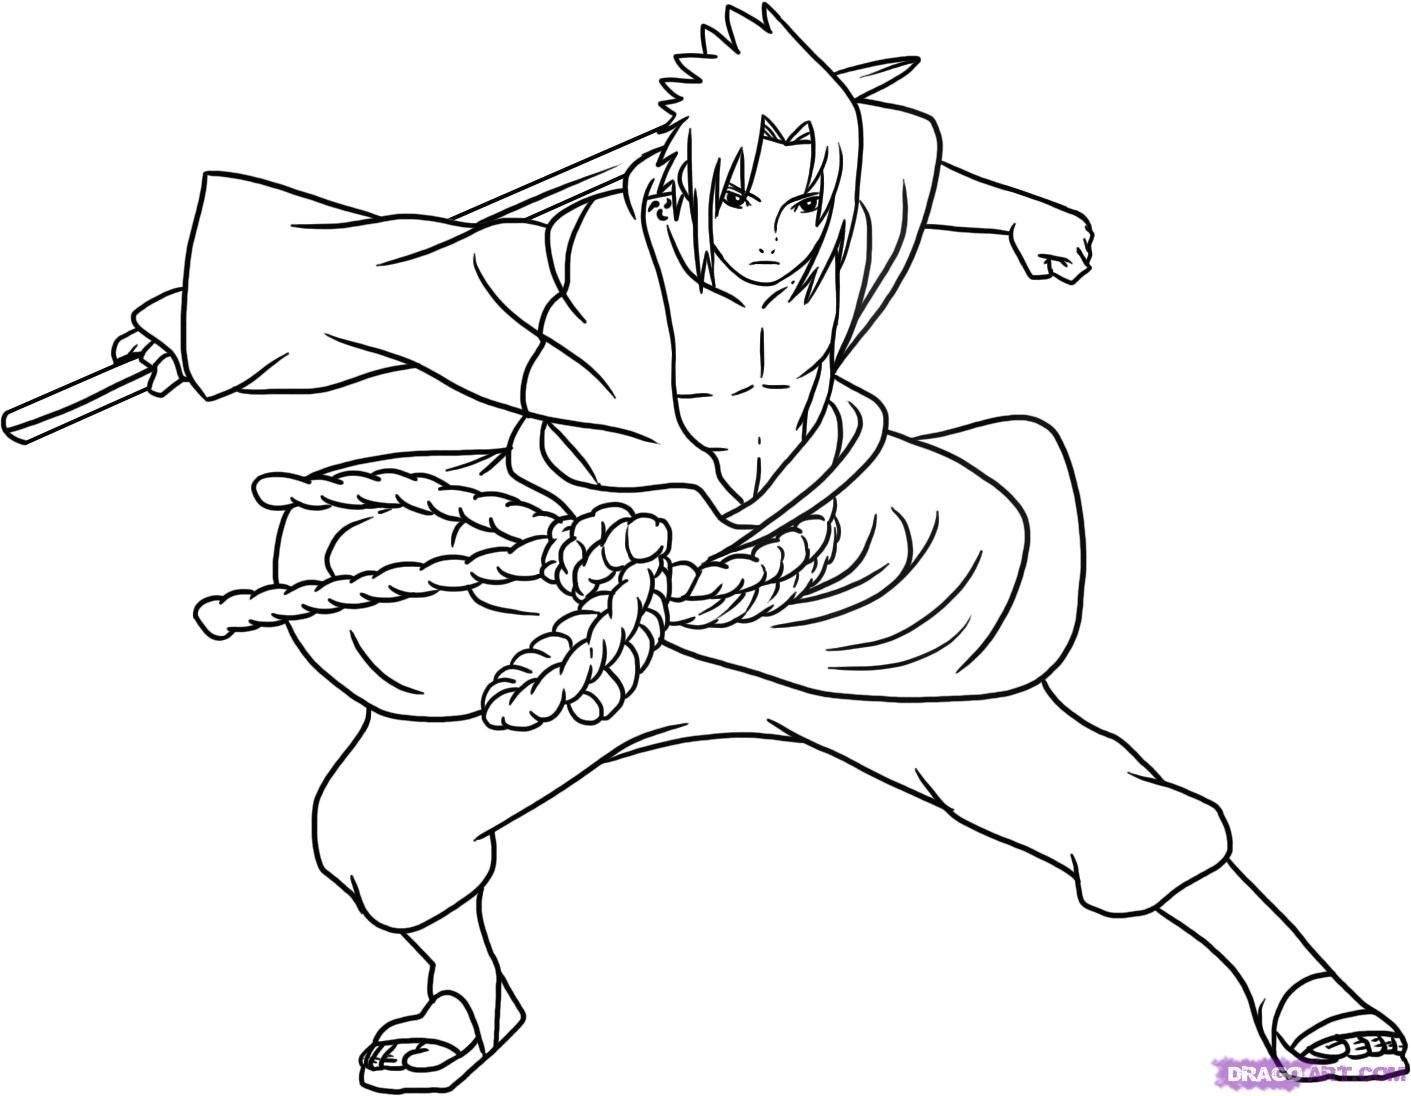 Naruto Coloring Pages Shippuden Thingkid Com Sasuke Drawing Cartoon Coloring Pages Coloring Pages